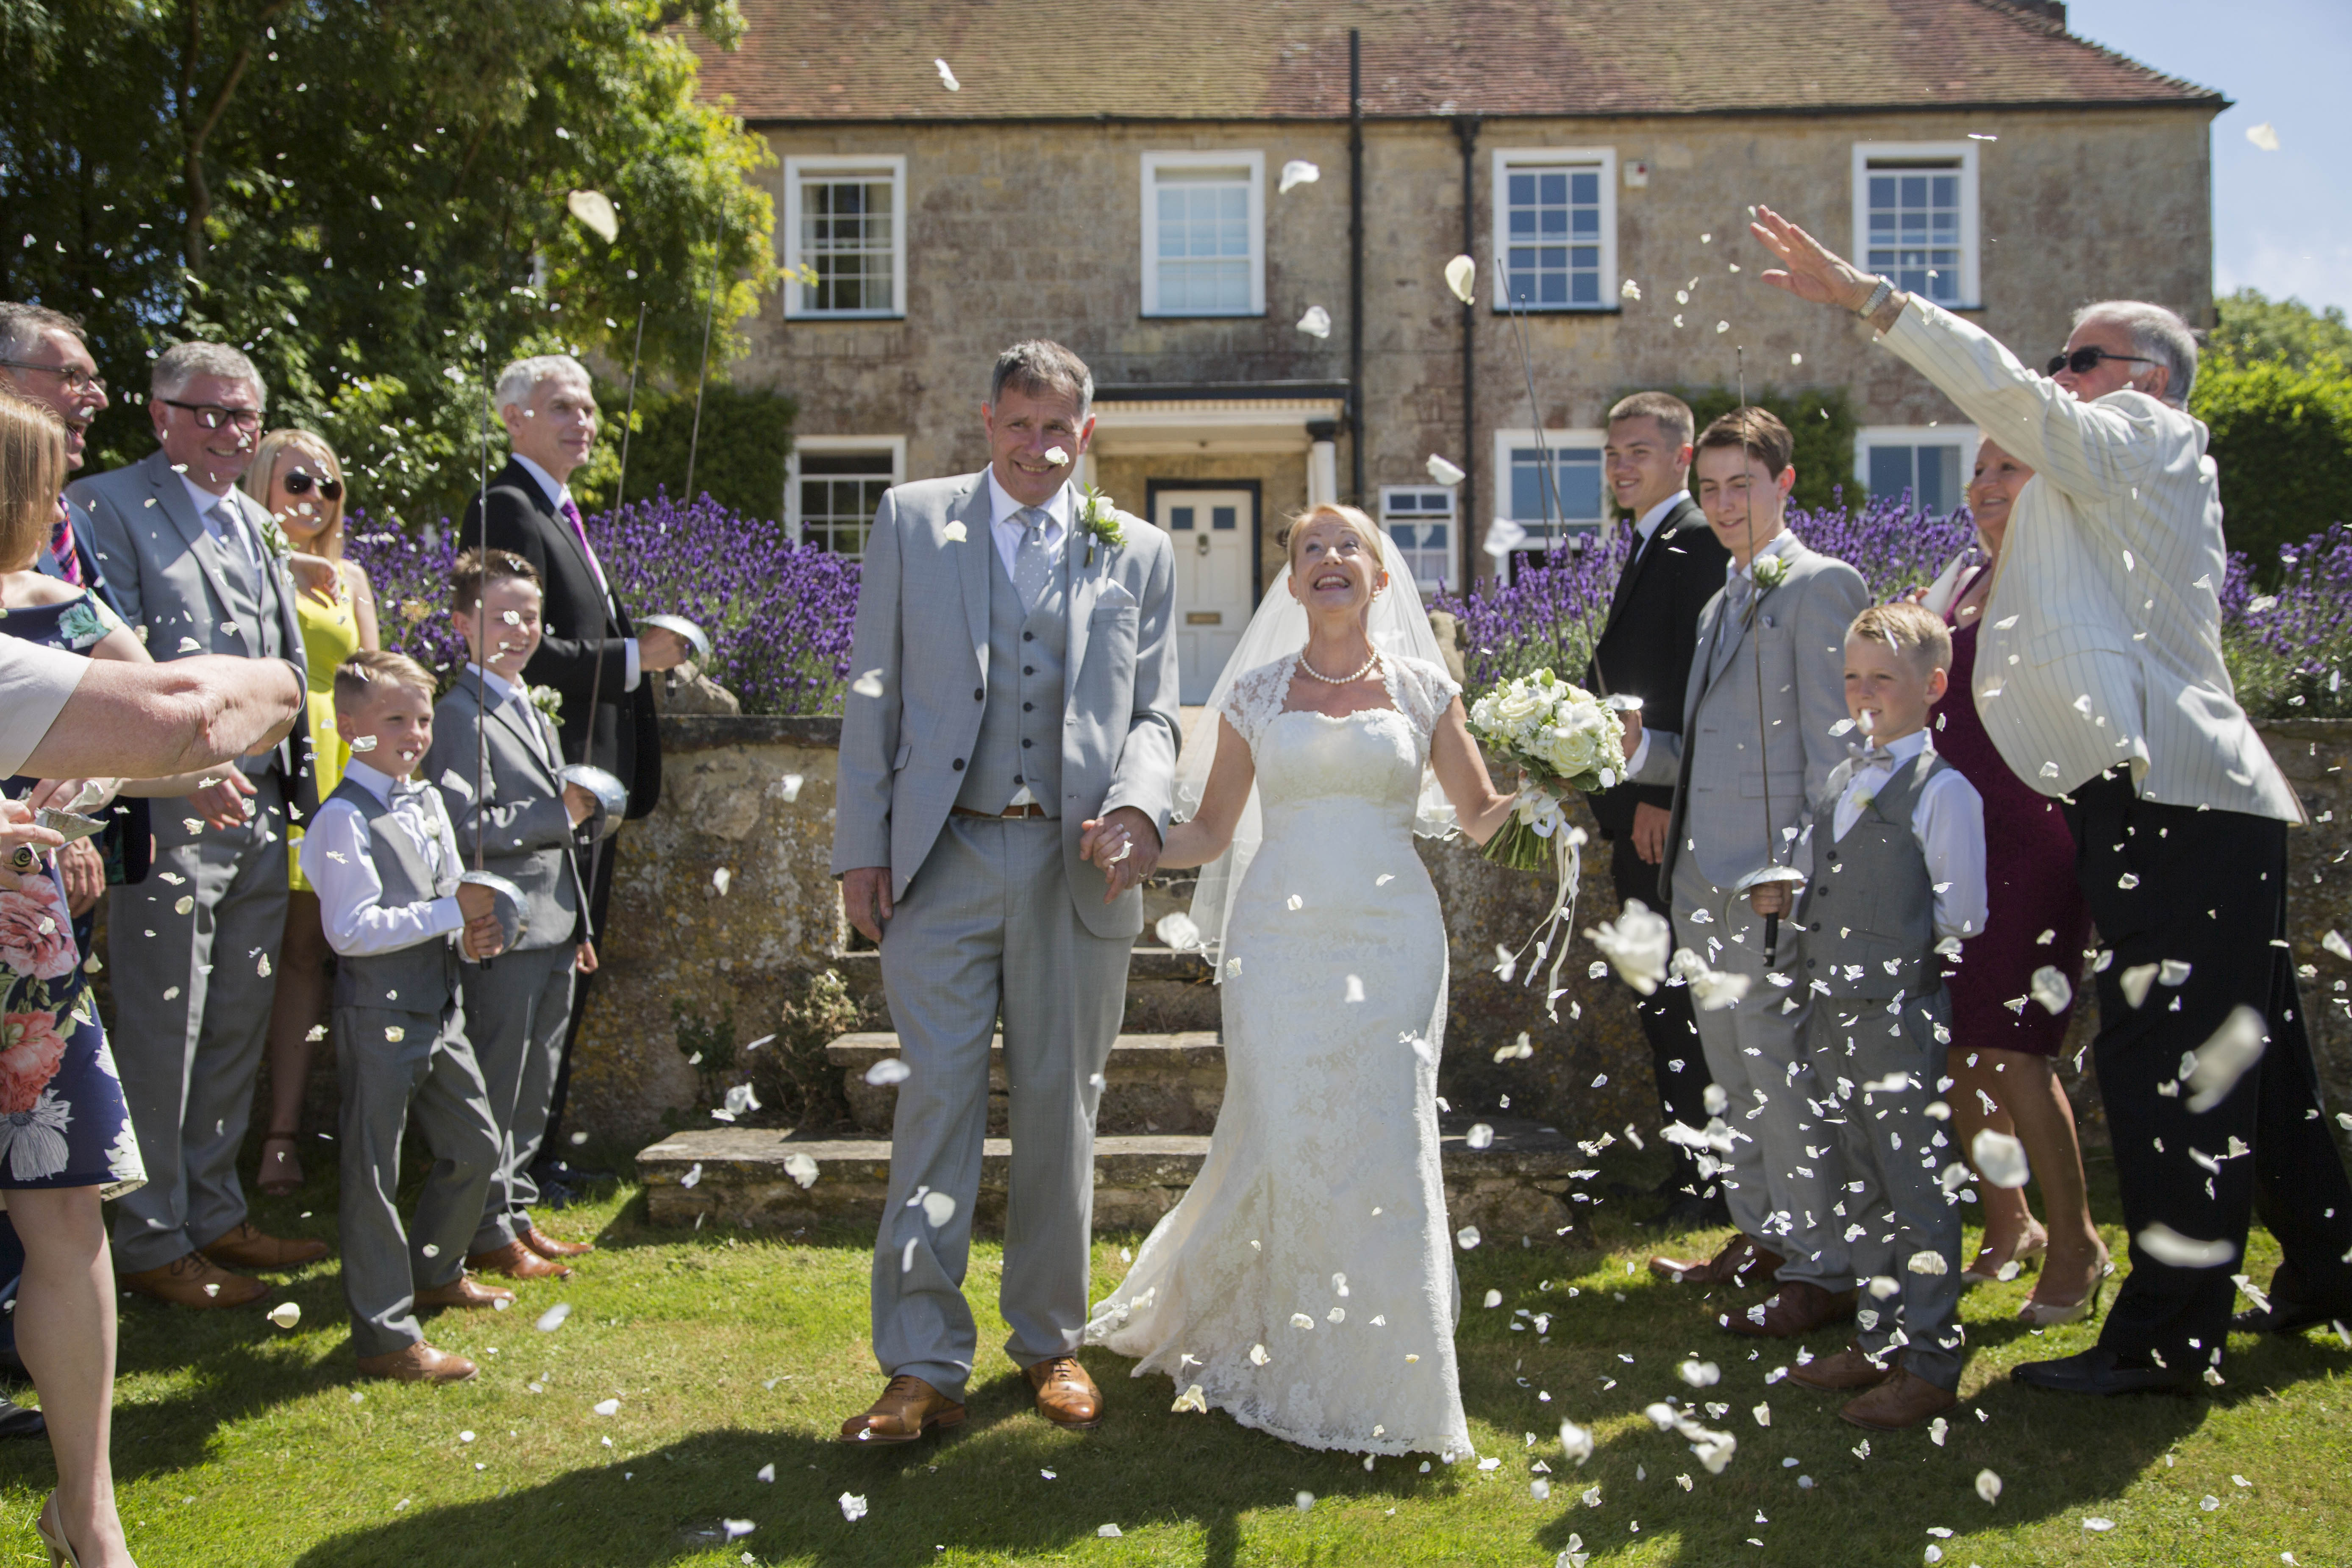 Isle of Wight Wedding and Portrait Photographer - Holly Cade Photography